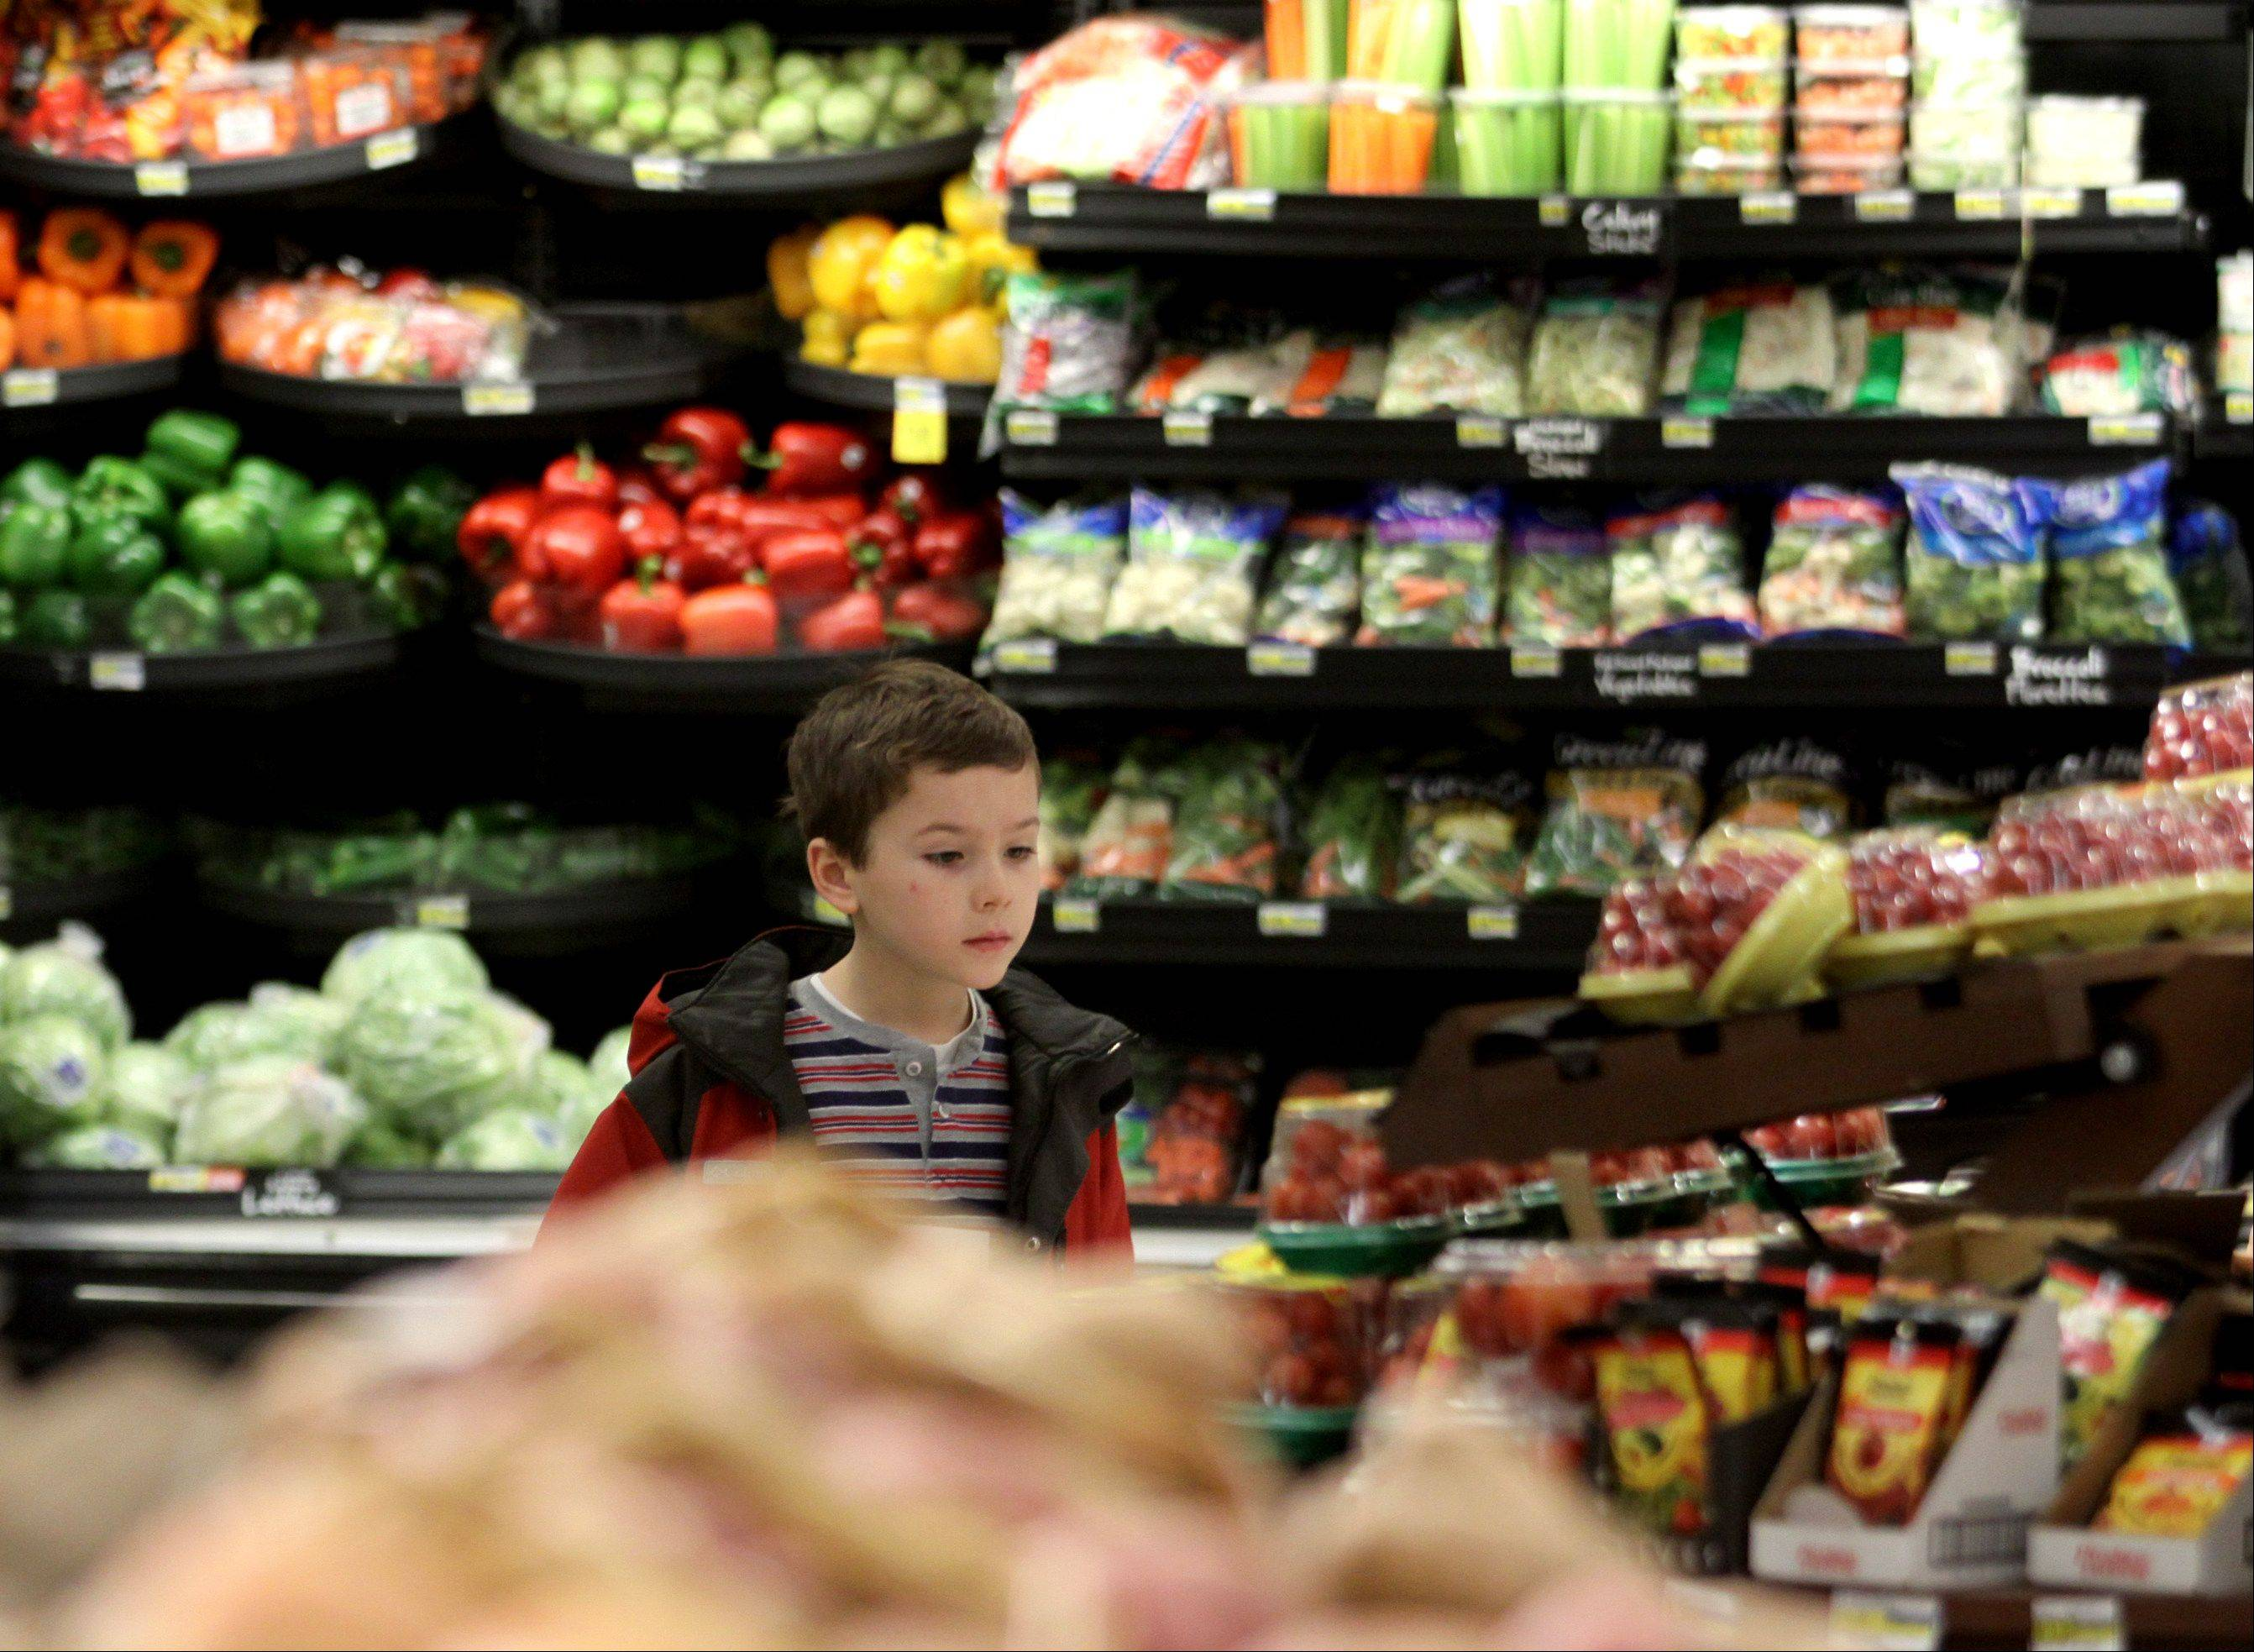 Matthew Toniolo, 7, of Bartlett, examines fresh produce options at a Jewel in Schaumburg during a meeting of the Fit Kids run by Alexian Brothers' Pediatric Department.